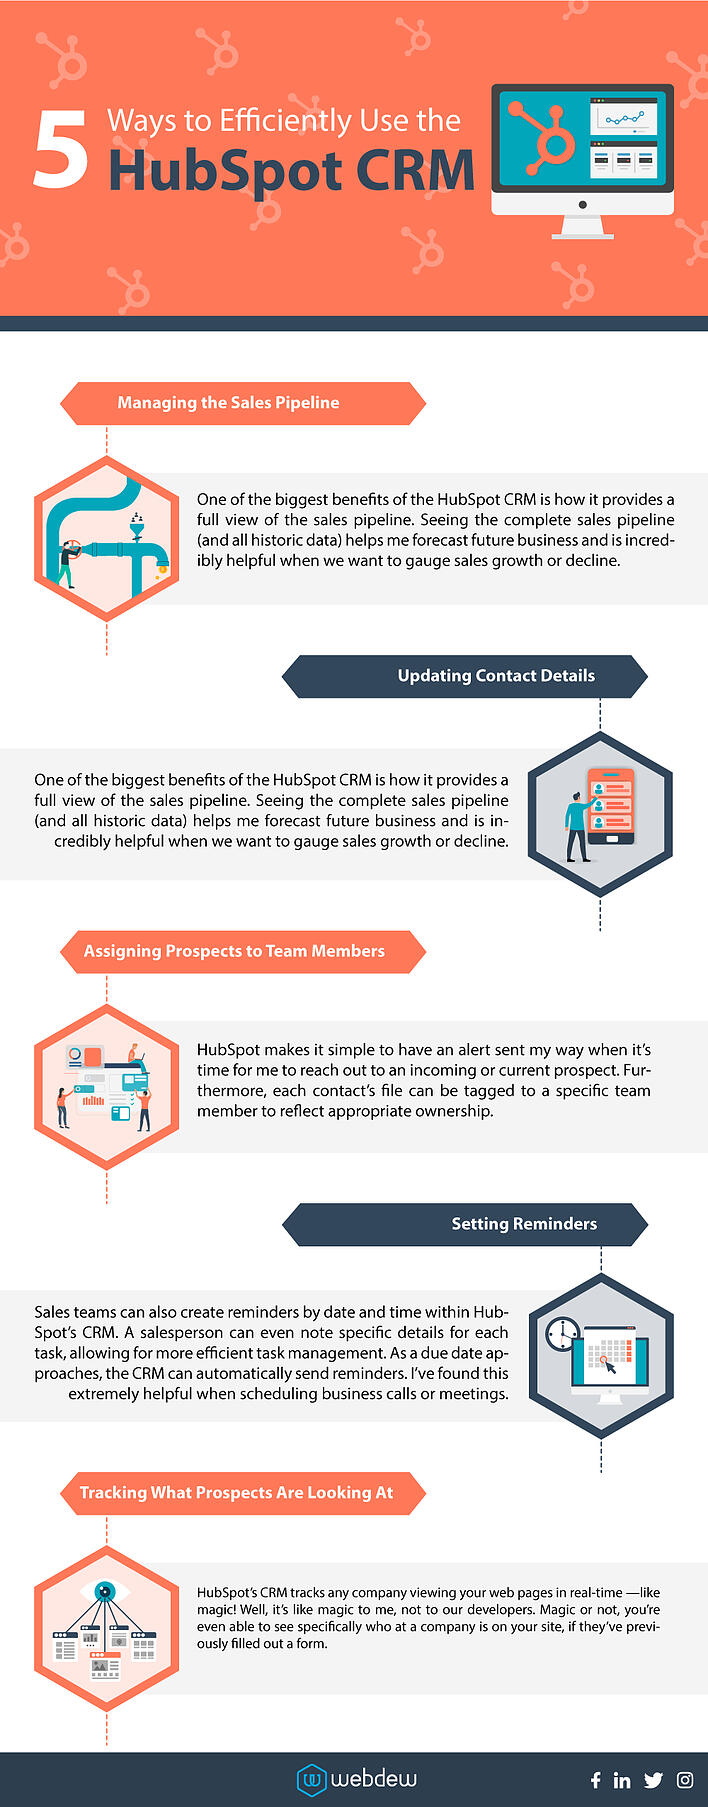 Alternatives to HubSpot CRM - 5 Ways to Use the HubSpot CRM - infographic